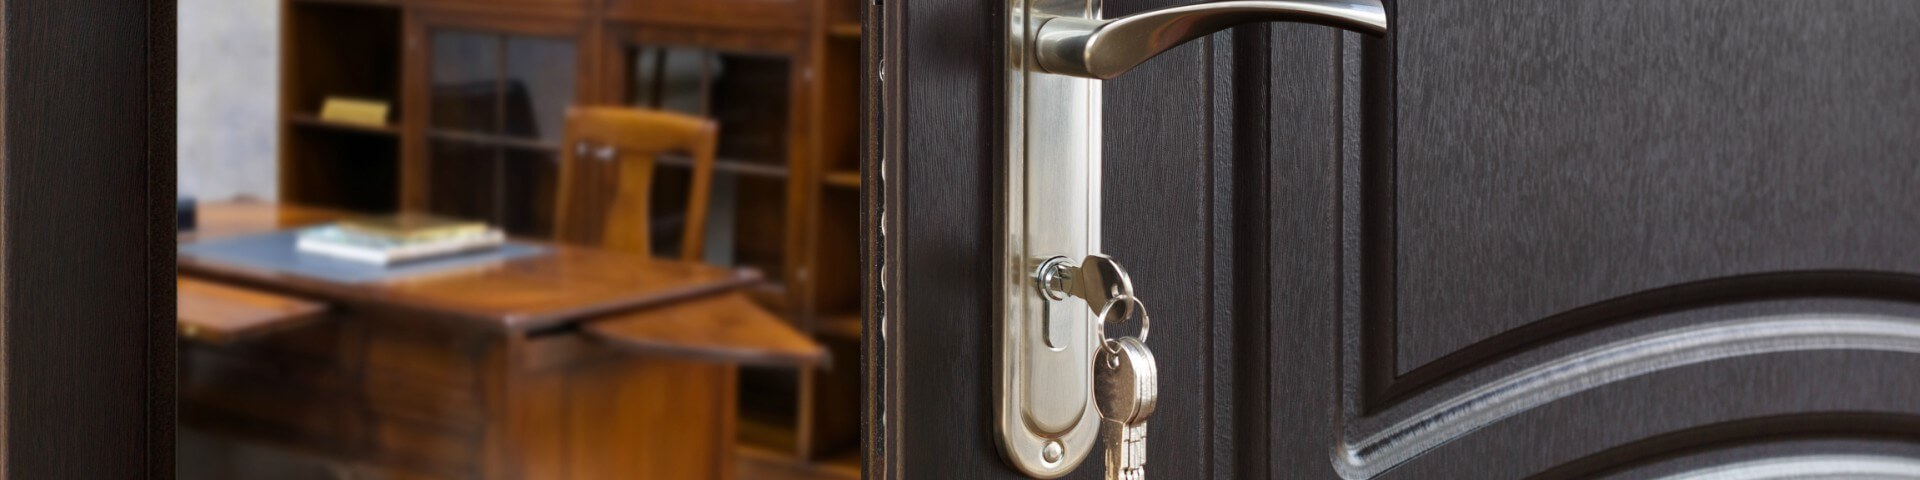 Office Lockout Services In Pflugerville Texas